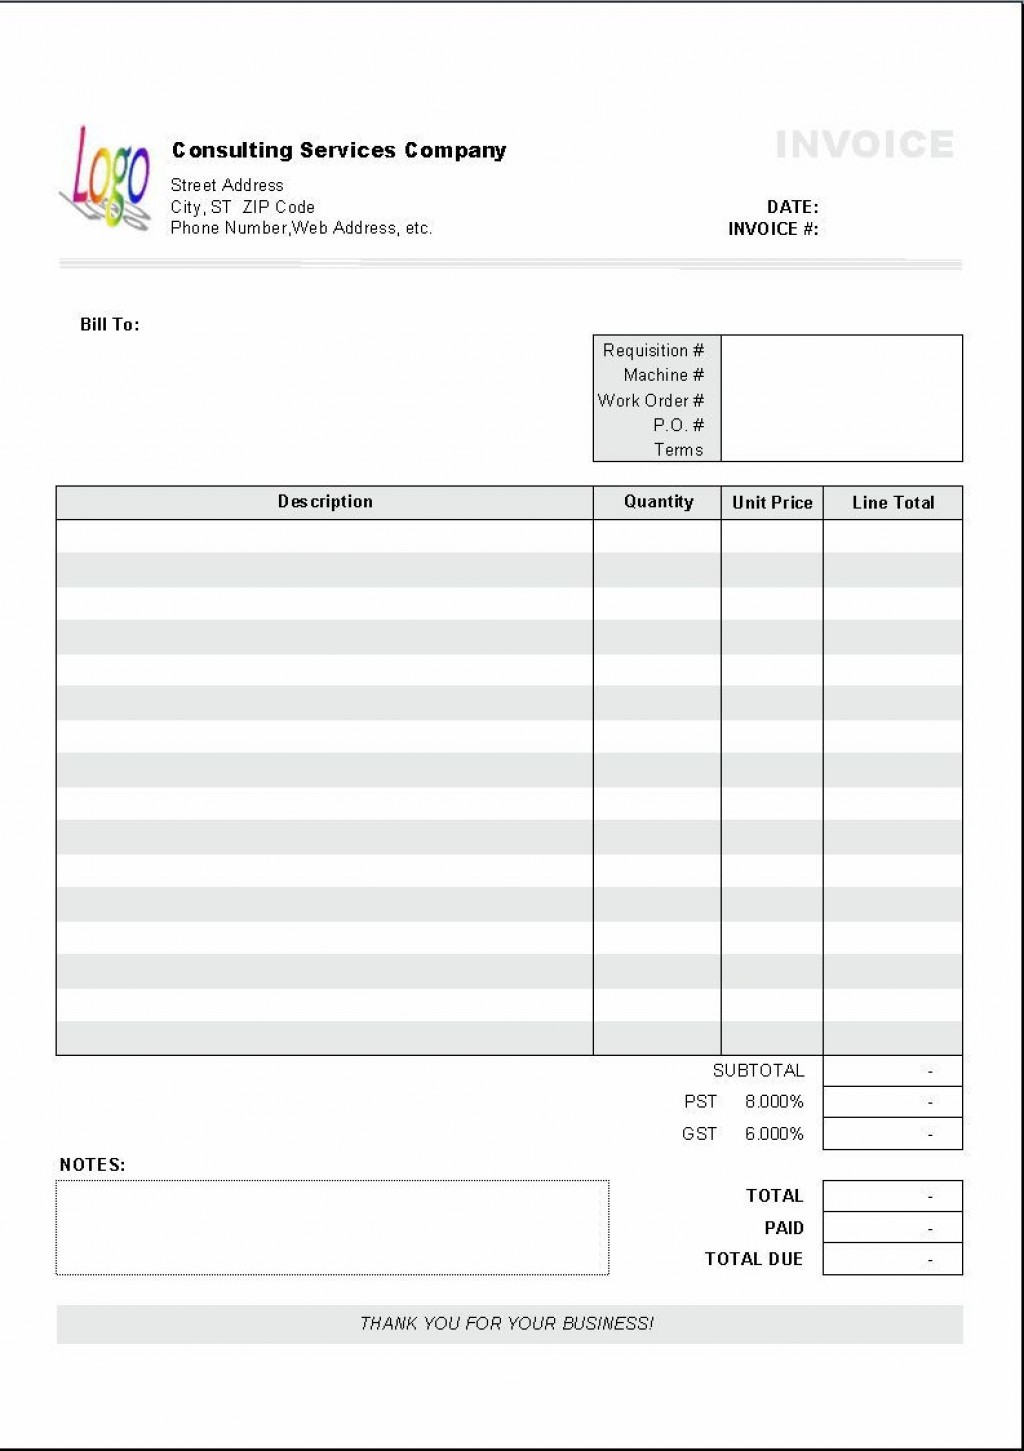 004 Marvelou Consulting Invoice Template Word Picture  Service Consultant Microsoft ContractorLarge